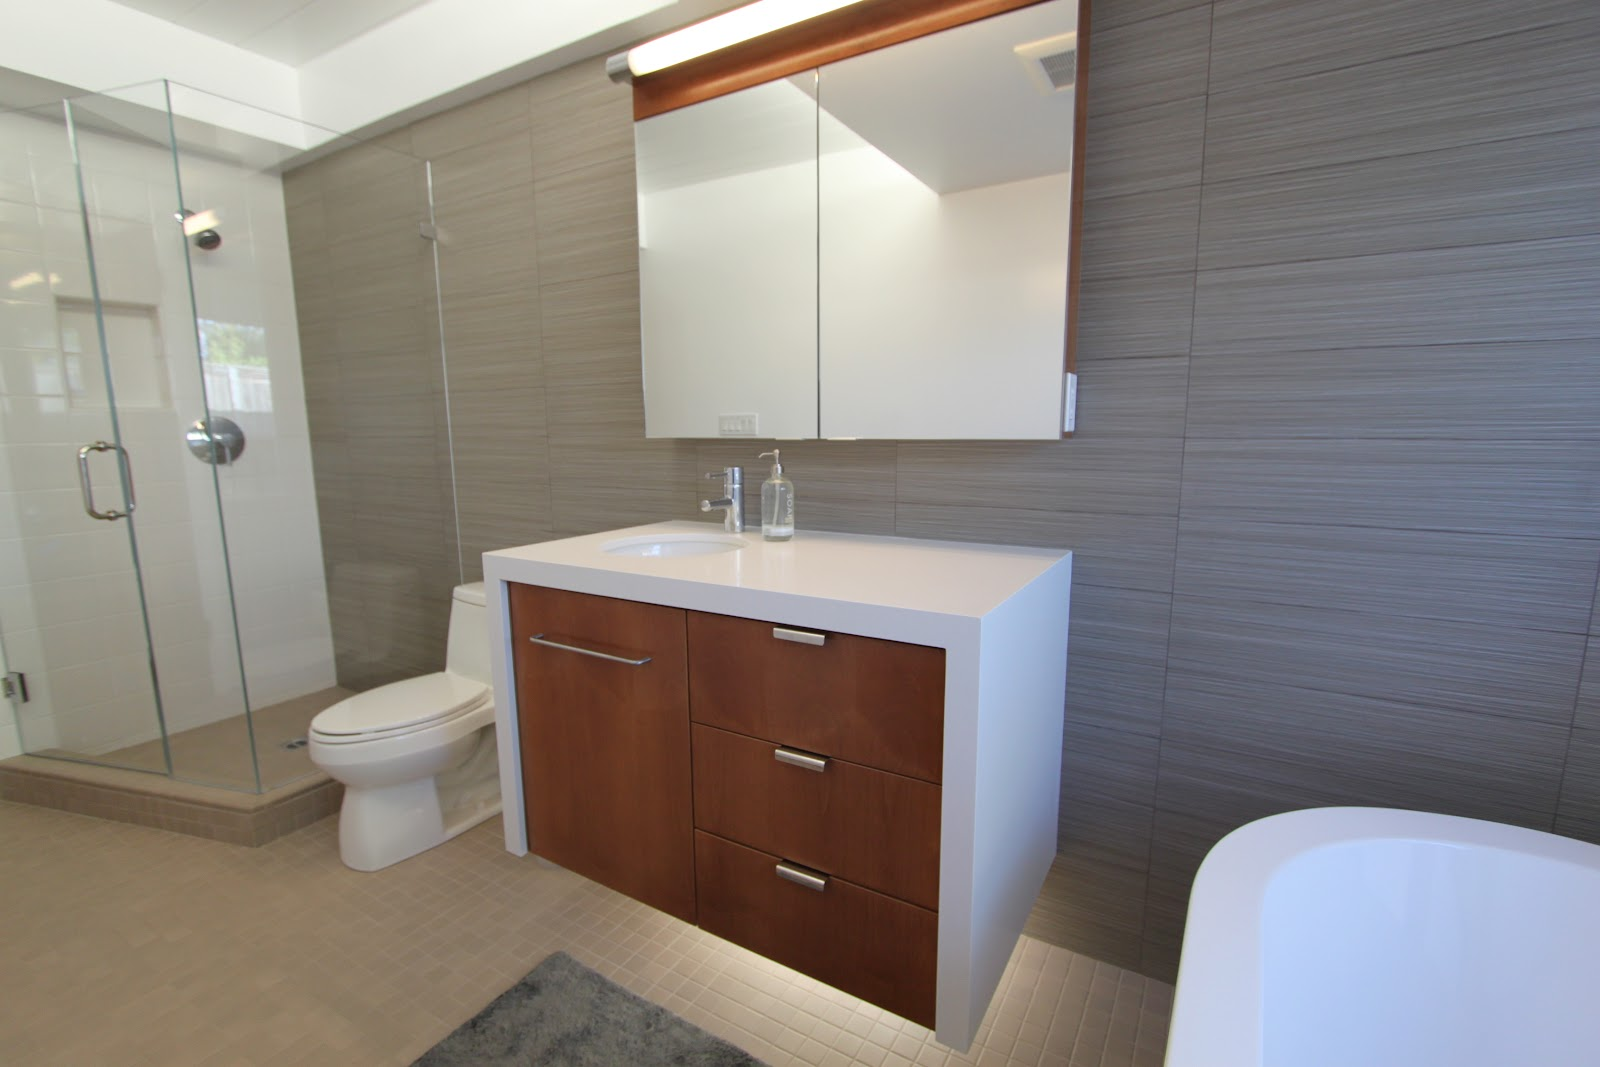 3 mid century bathrooms remodeled mid century modern remodel for Modern bathroom